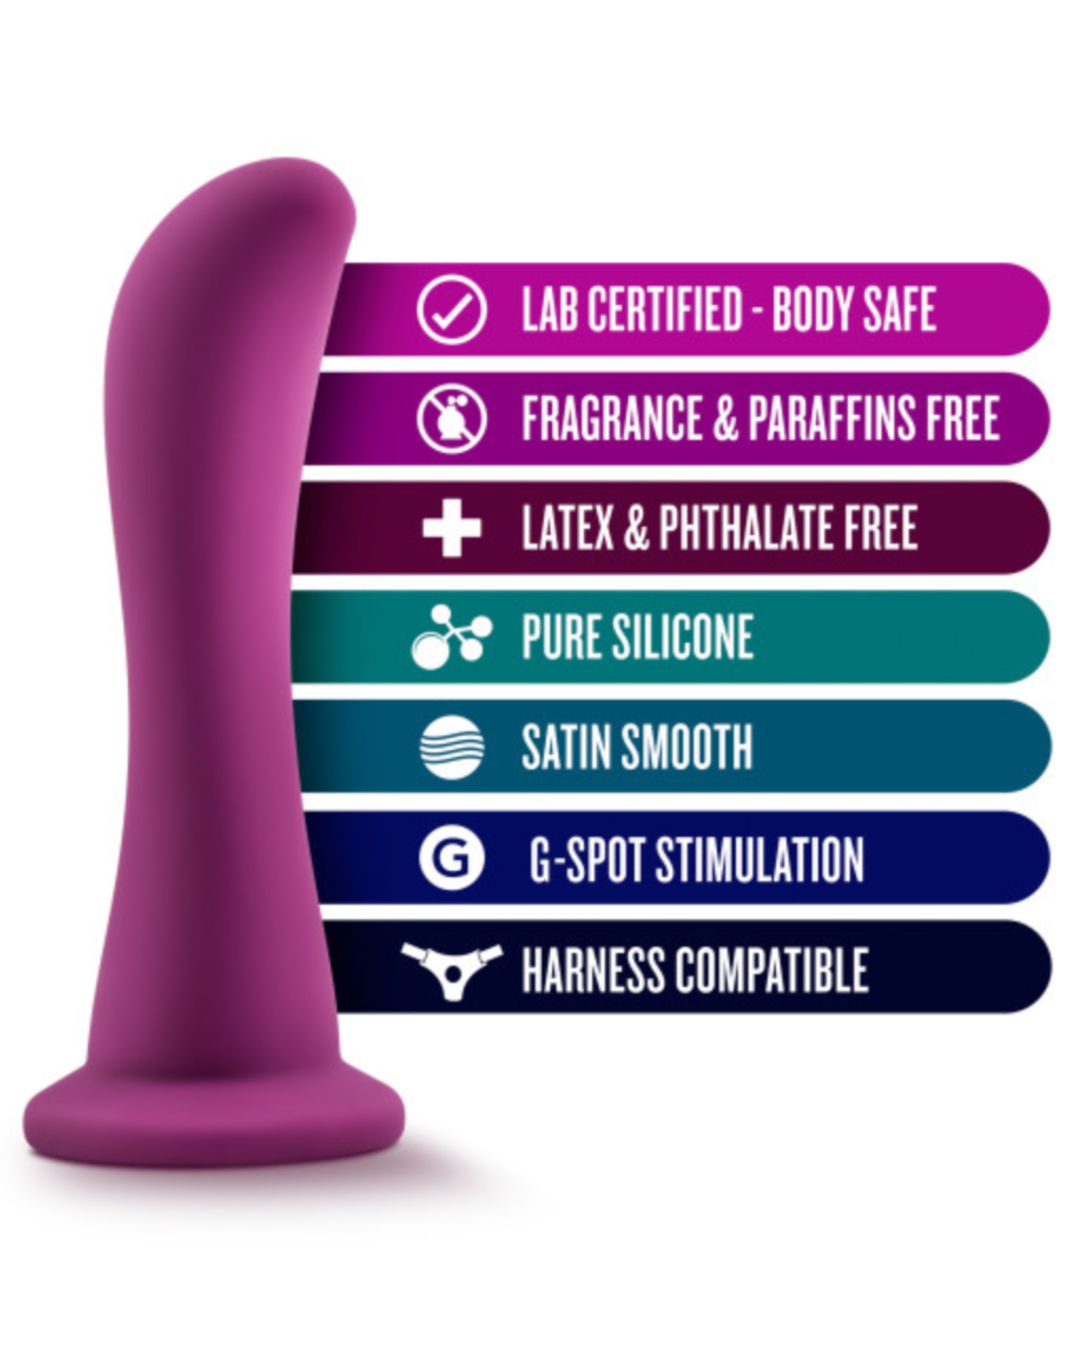 Temptasia Bellatrix 6.25 Inch G-Spot Dildo by Blush - Plum Purple